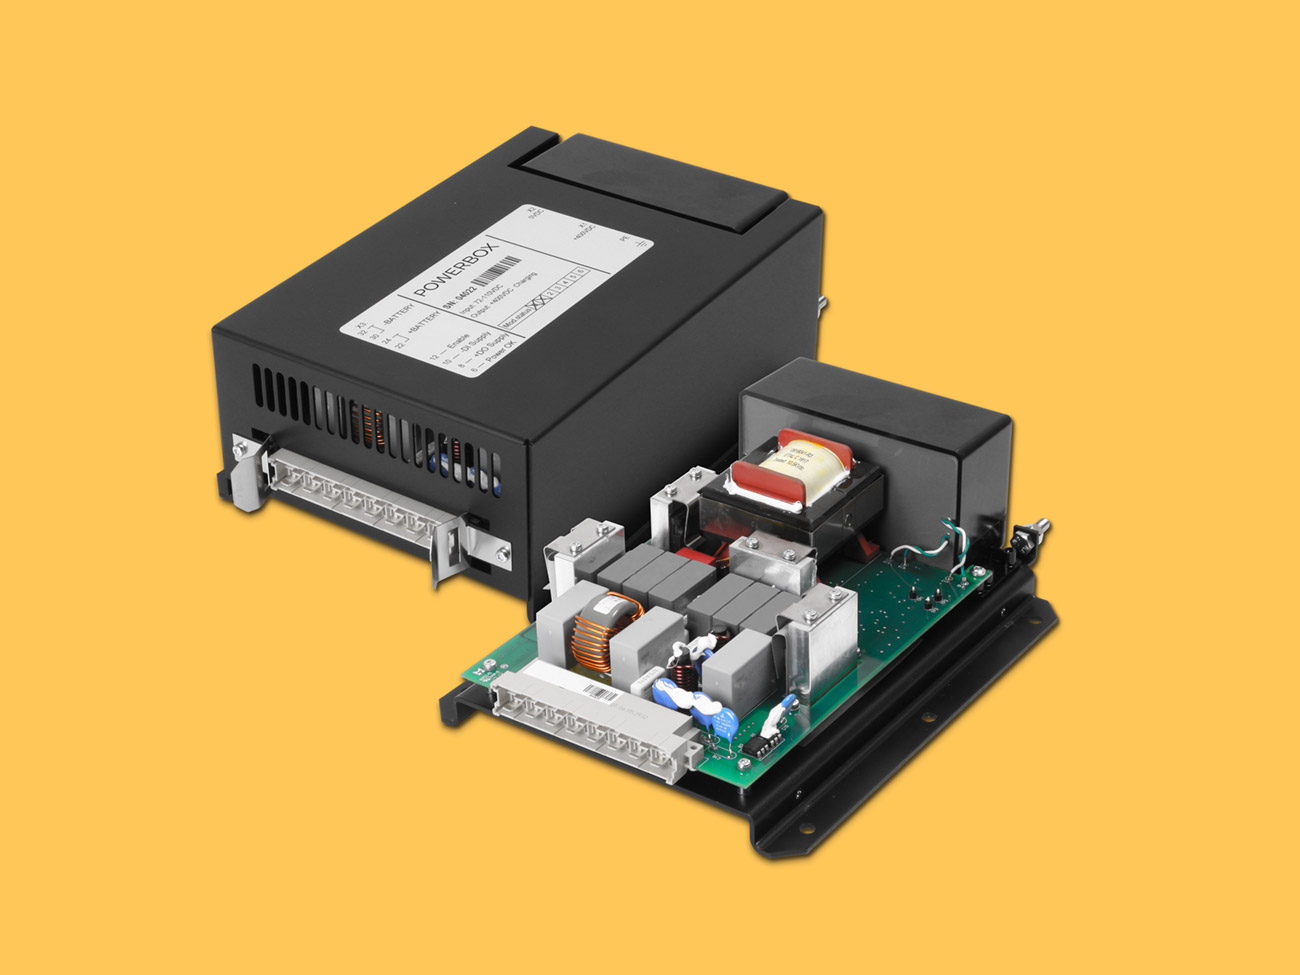 New Product Announcements Power Sources Manufacturers Association Pulsedlight Sensor Discrete Semiconductor Circuits Electronics Designed For Indoor And Outdoor Applications The Enr1000 Pc Series Can Be Operated Within A Wide Range Of Temperature From 40 To 70 Degrees C